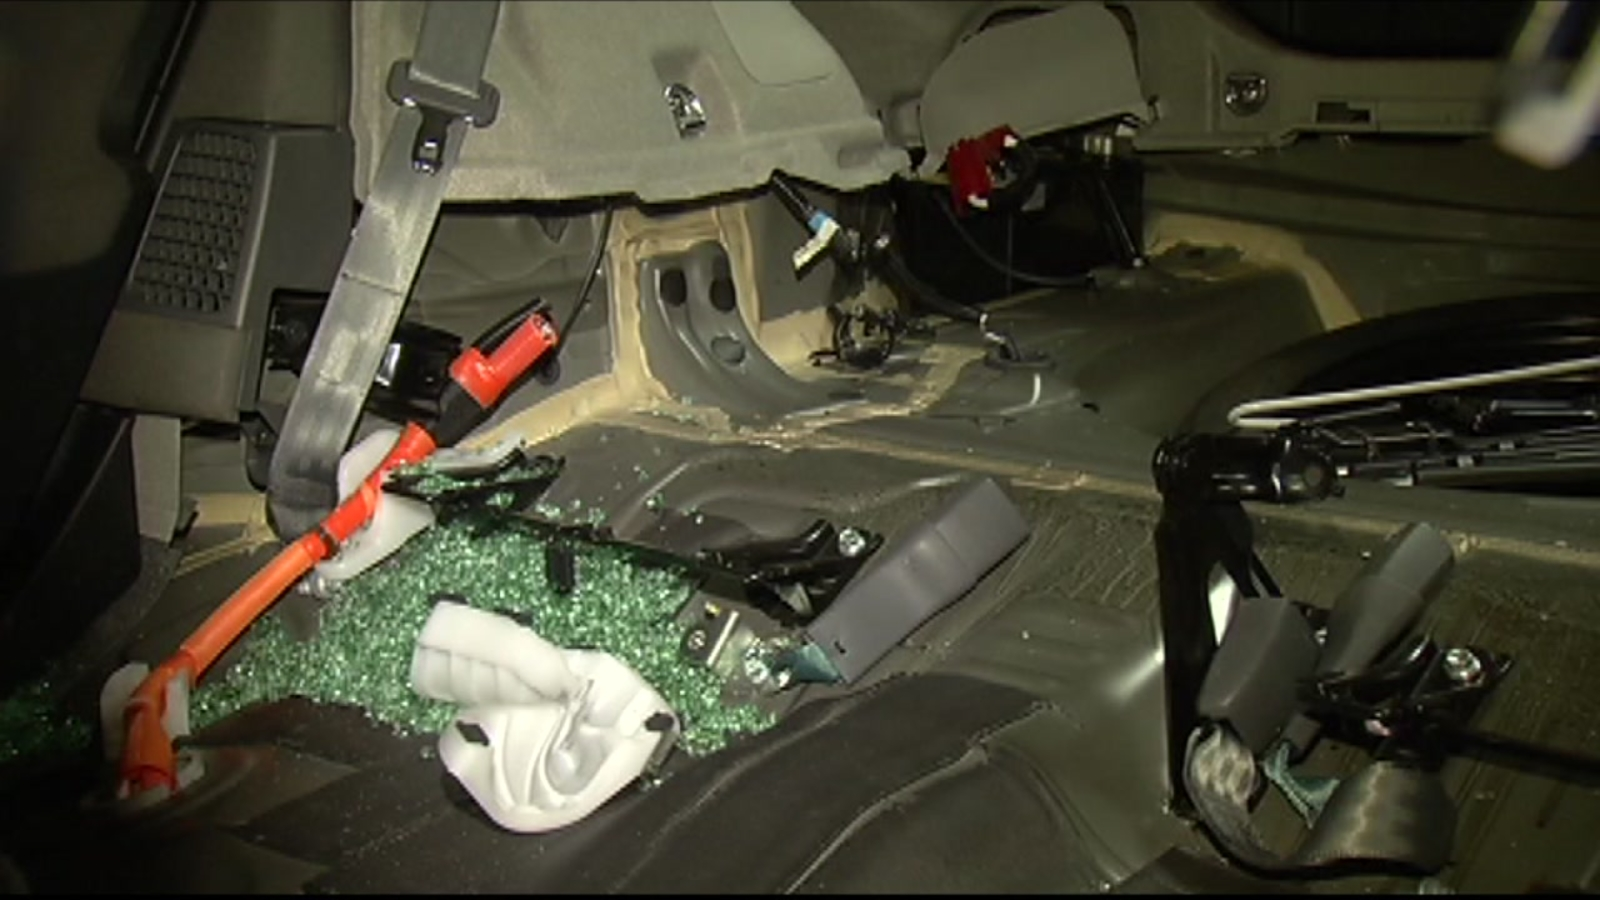 San Francisco woman returns to Prius to find car disassembled, battery stolen